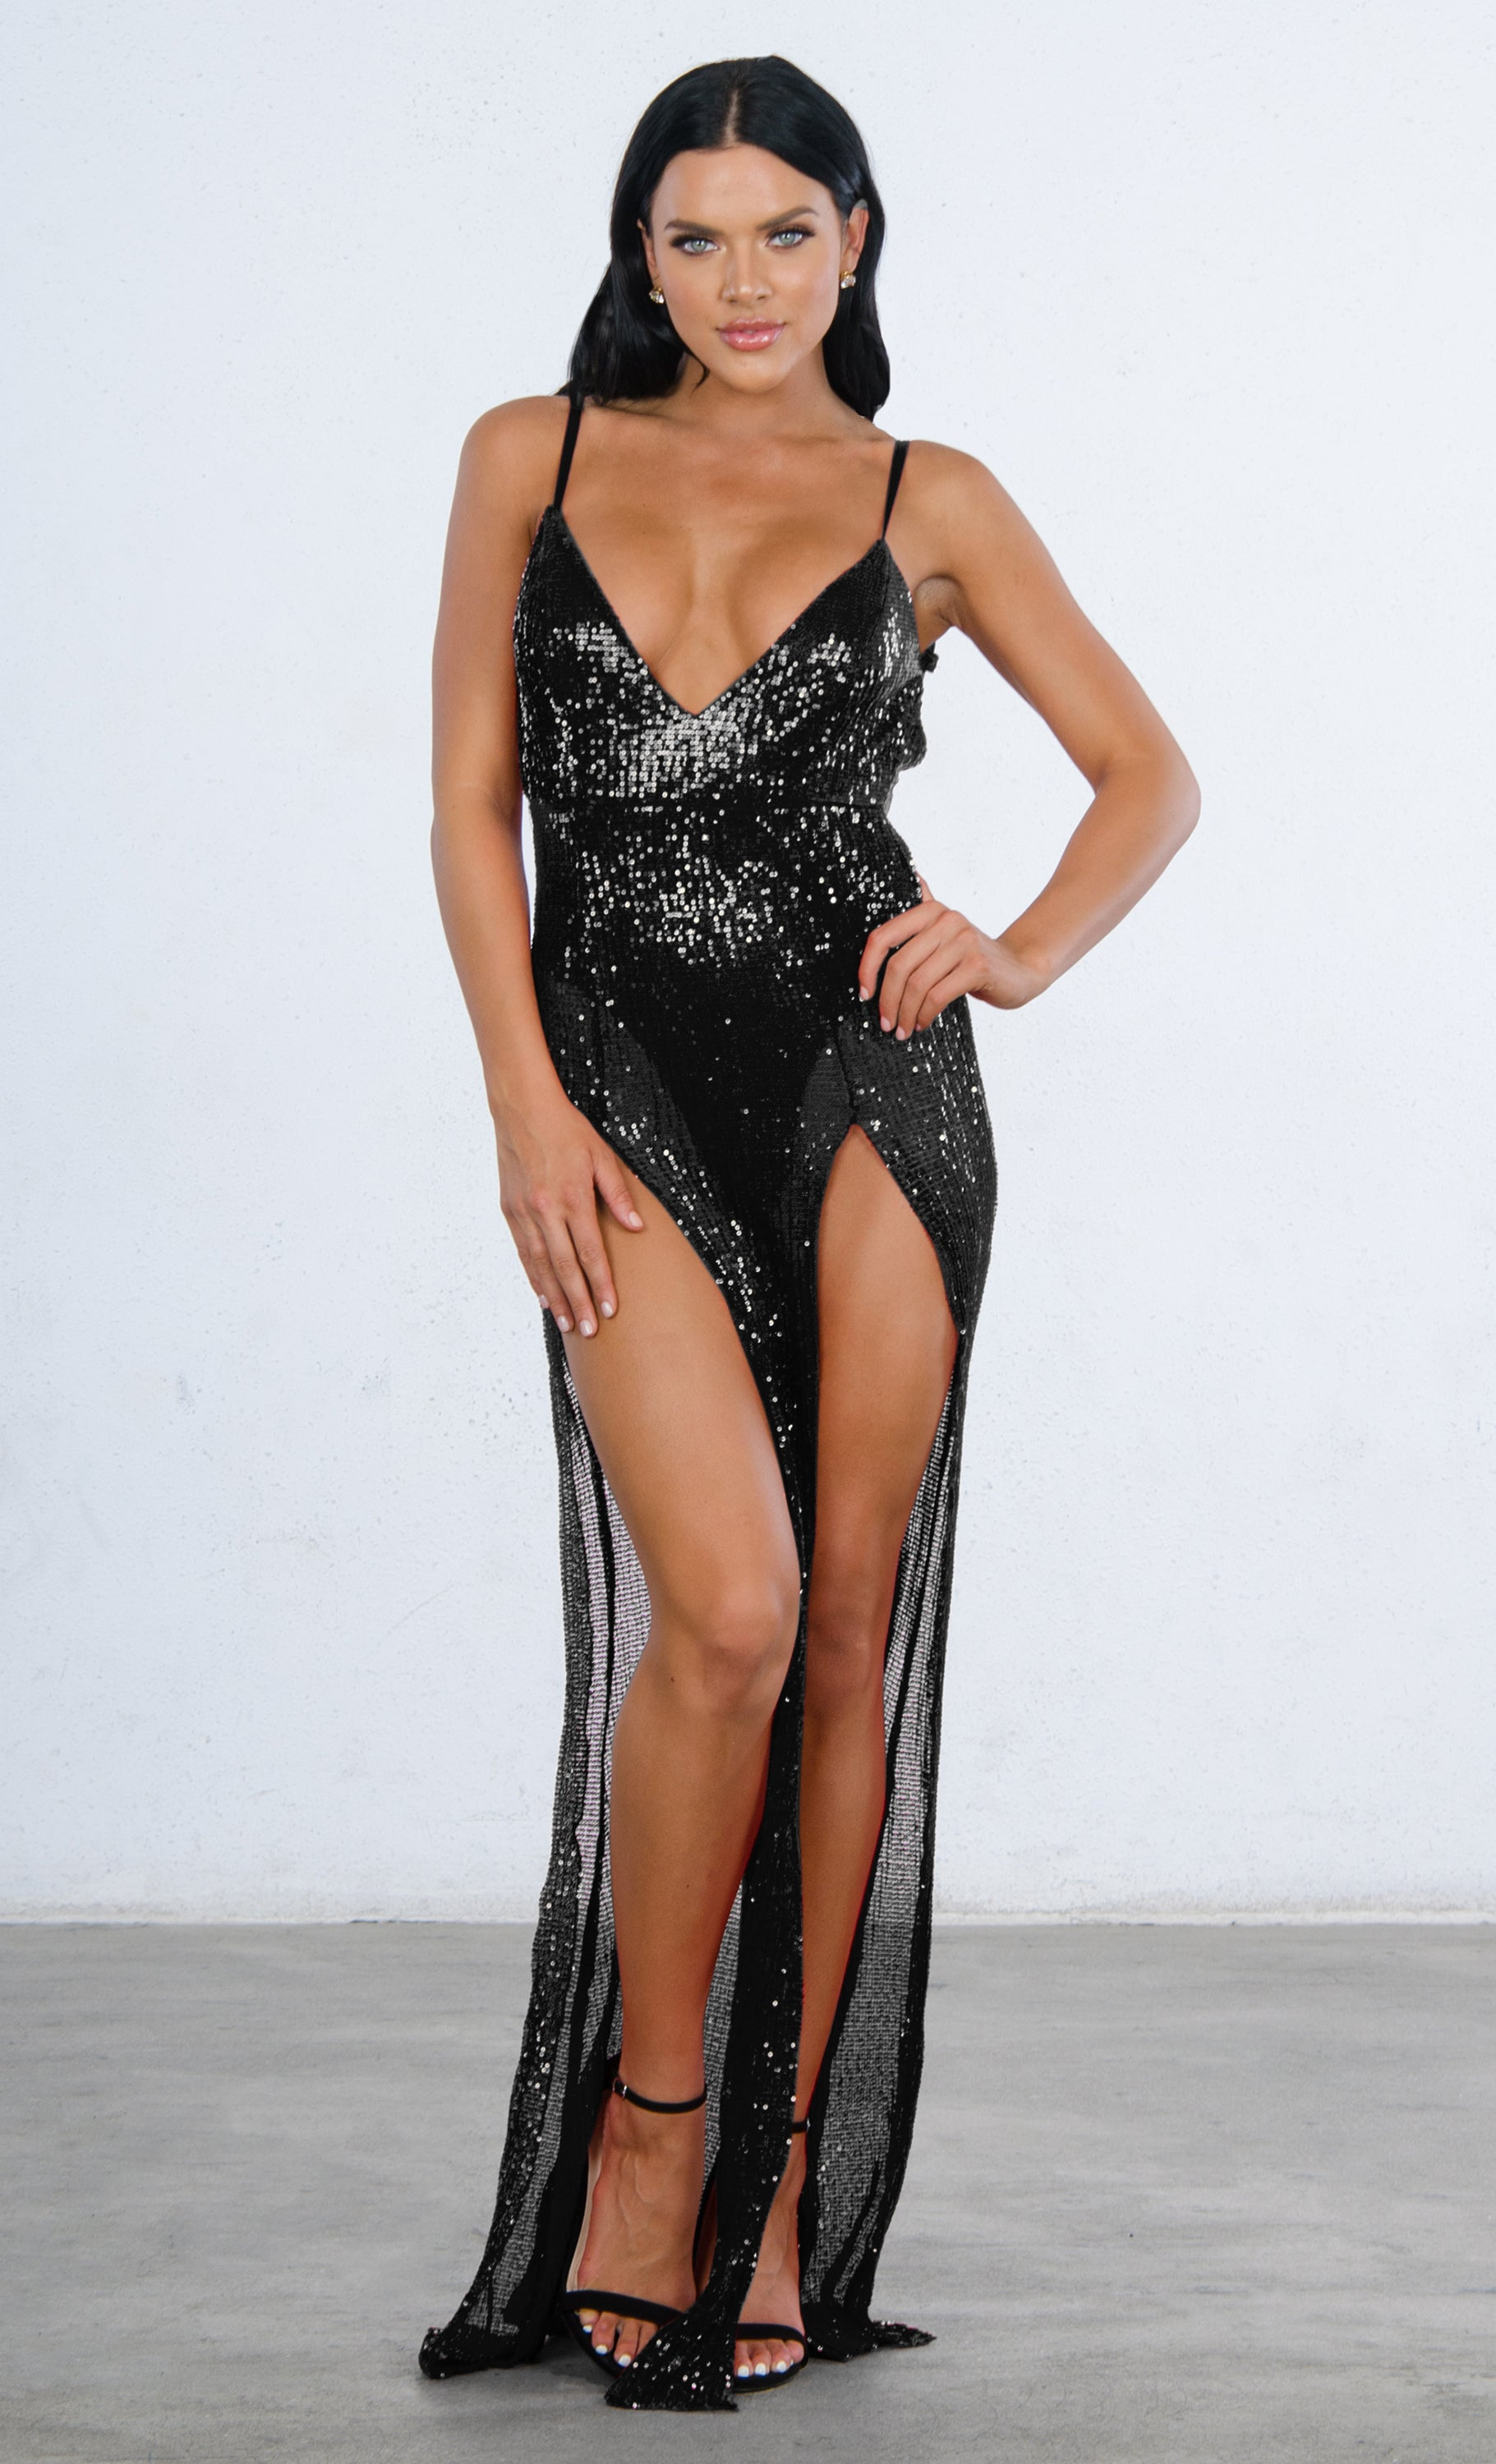 d73459a342f Indie XO Mystery Girl Black Semi Sheer Sequin Sleeveless Spaghetti Strap  Plunge V Neck Backless Double